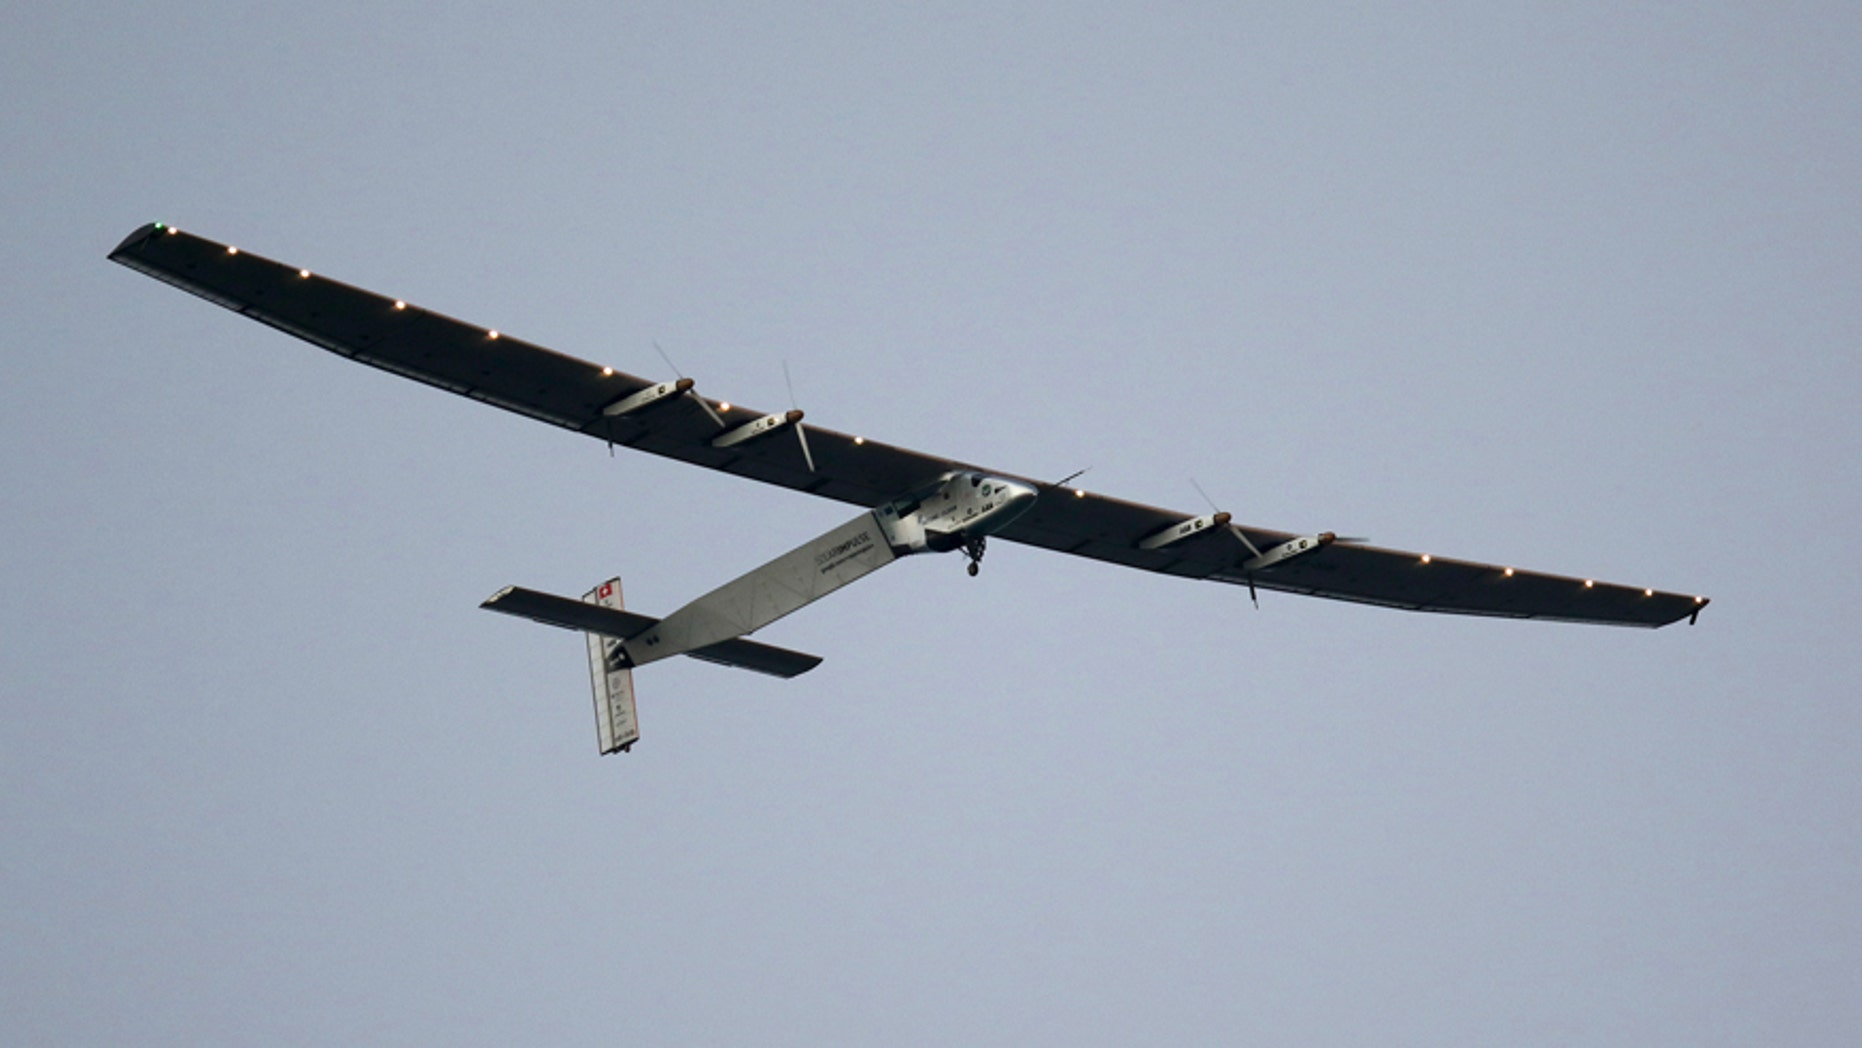 File photo - The Solar Impulse 2 airplane, piloted by Andre Borschberg, prepares to land at Kalaeloa airport after flying non-stop from Nagoya, Japan in Kapolei, Hawaii, July 3, 2015.